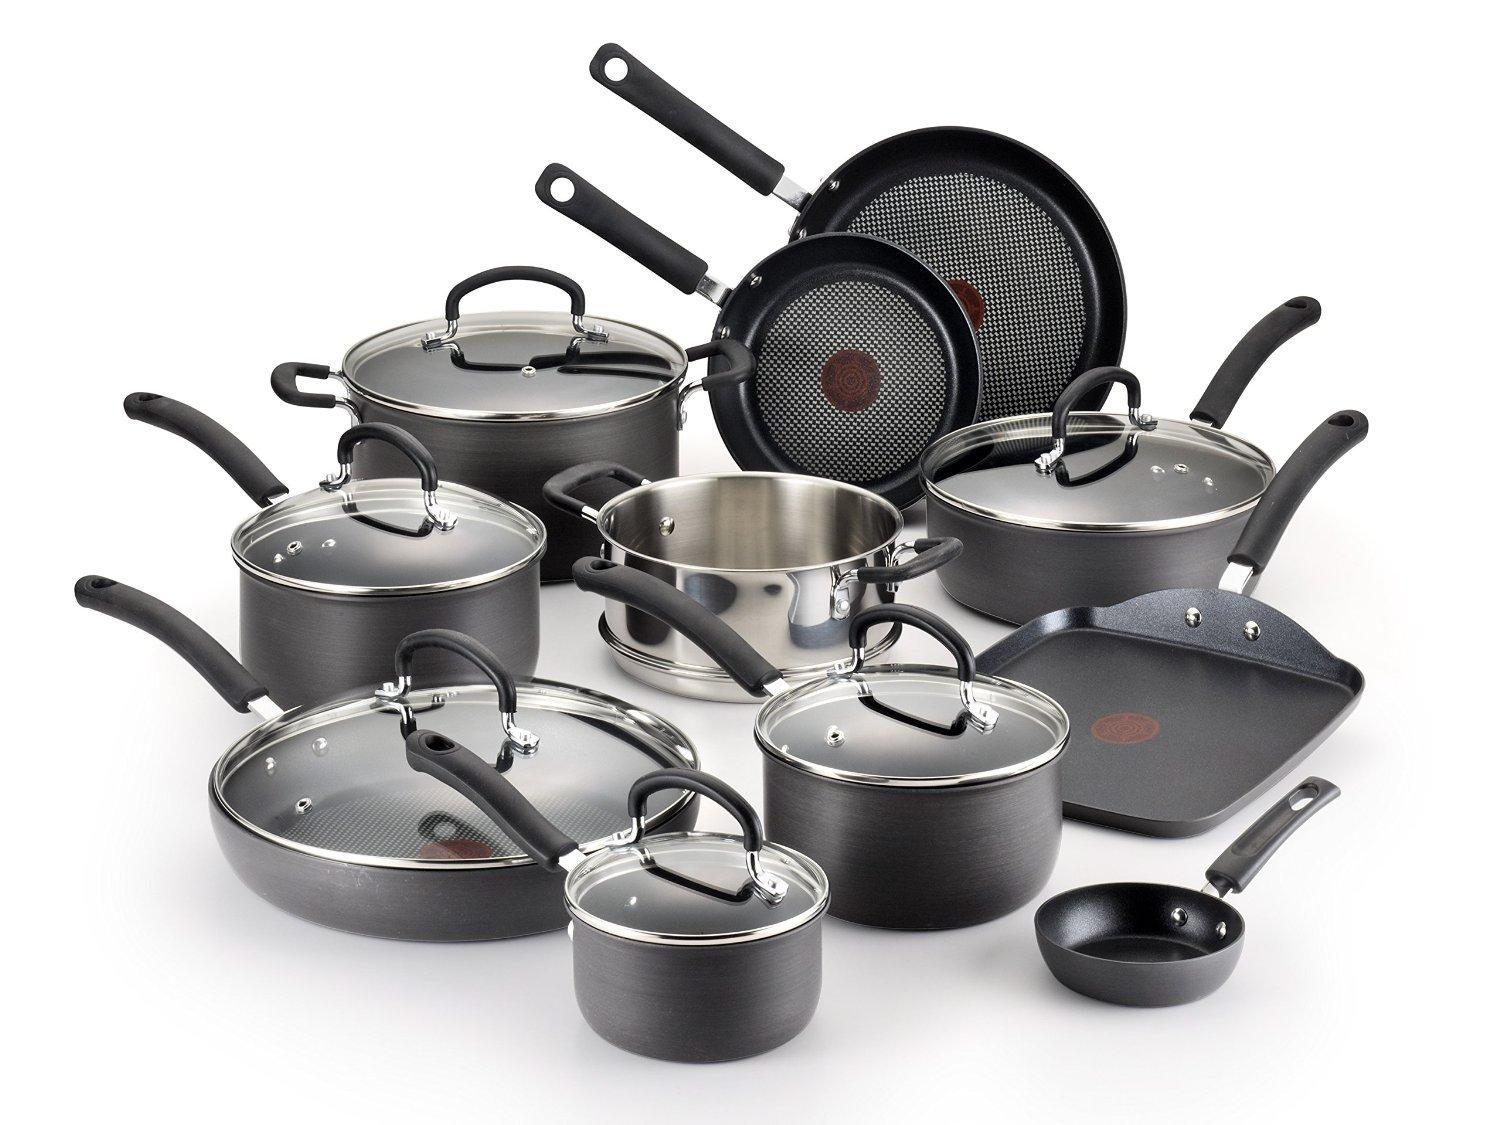 T-fal Hard Anodized Nonstick Cookware Set, 17-Piece